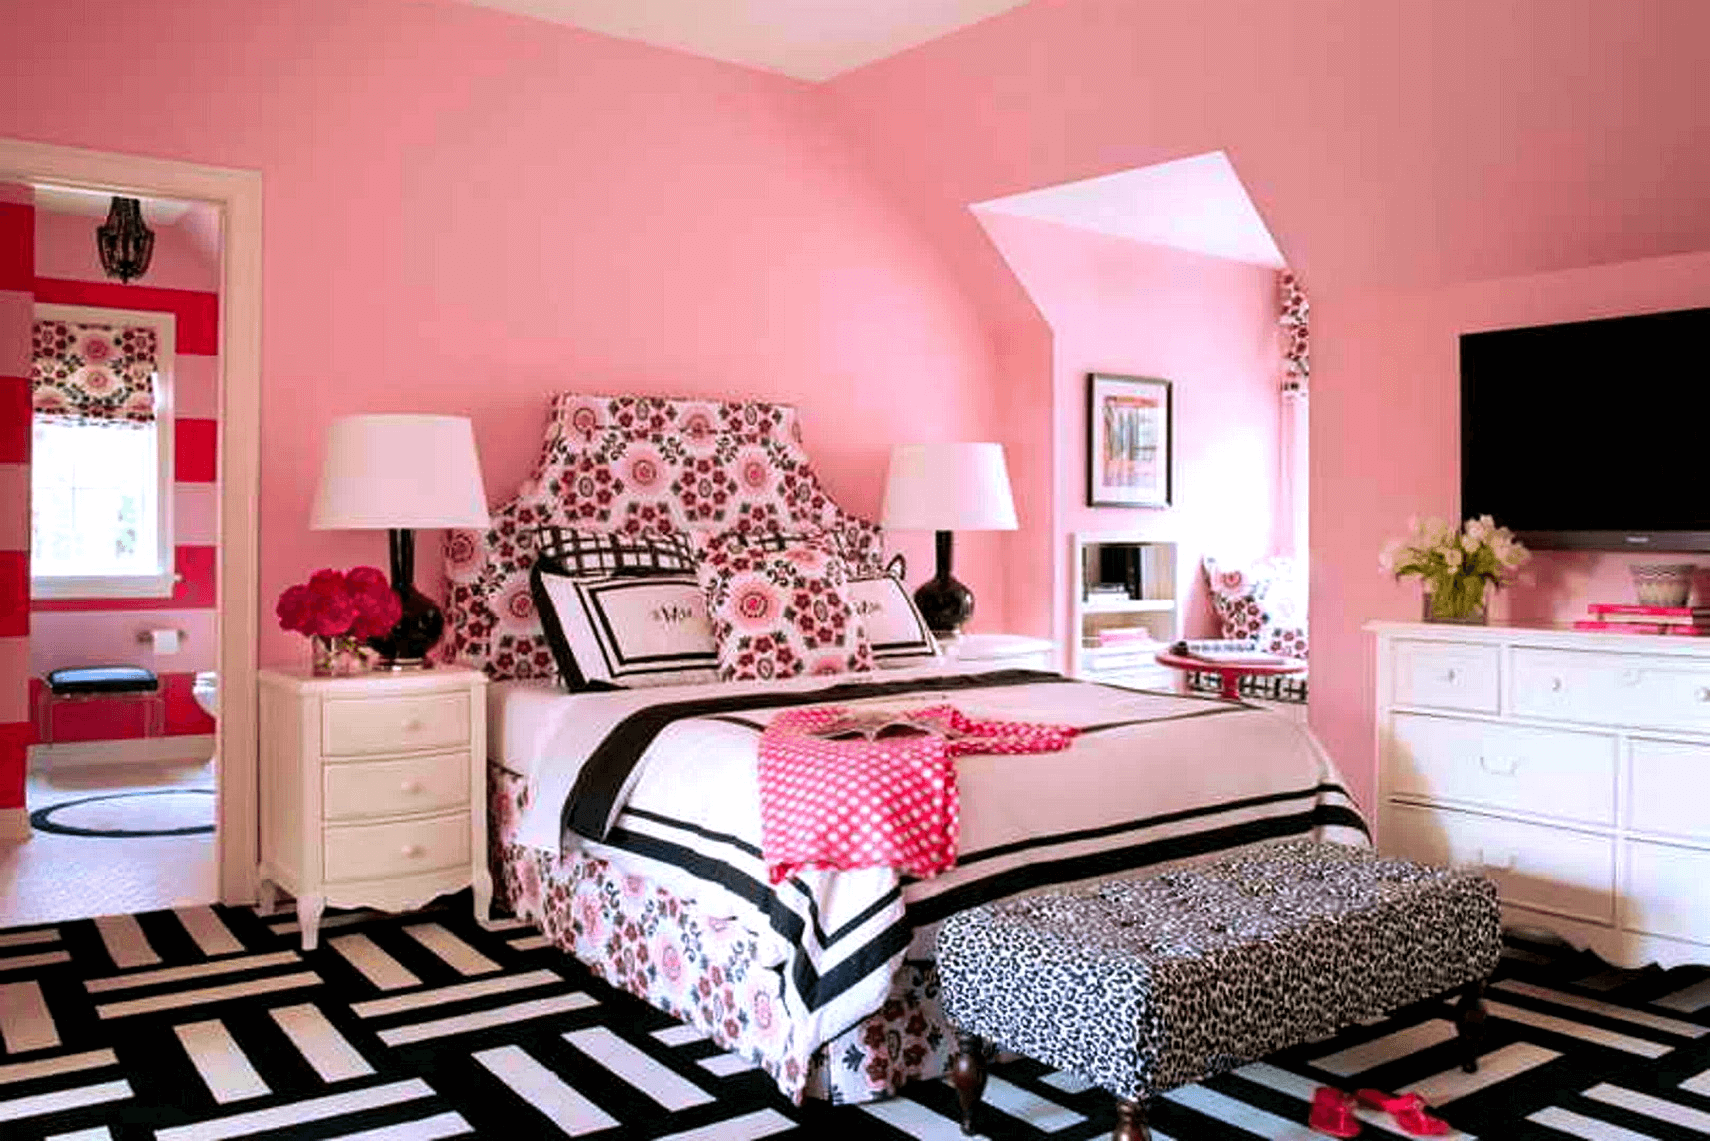 12 Romantic Master Bedroom Décor Ideas for Small Space  Small